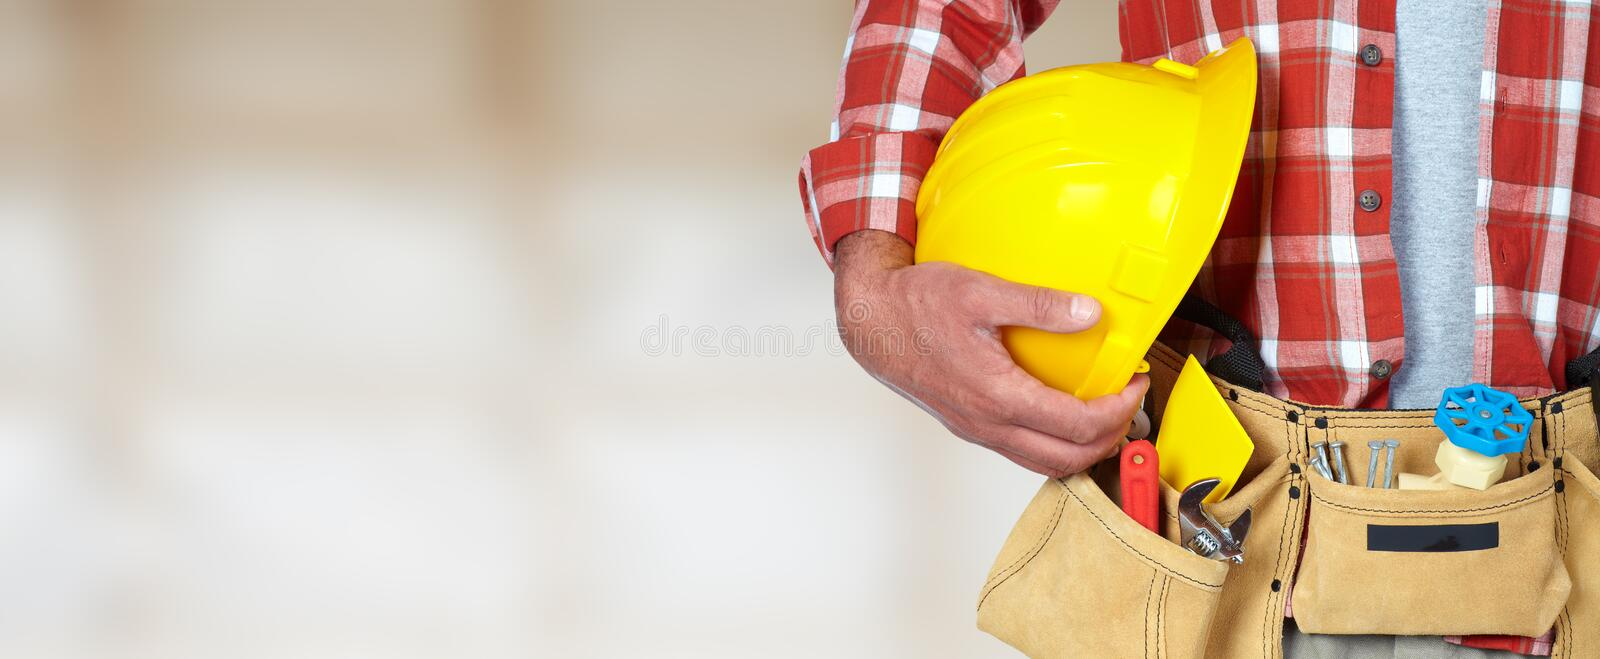 Construction worker with helmet and tool belt. royalty free stock image